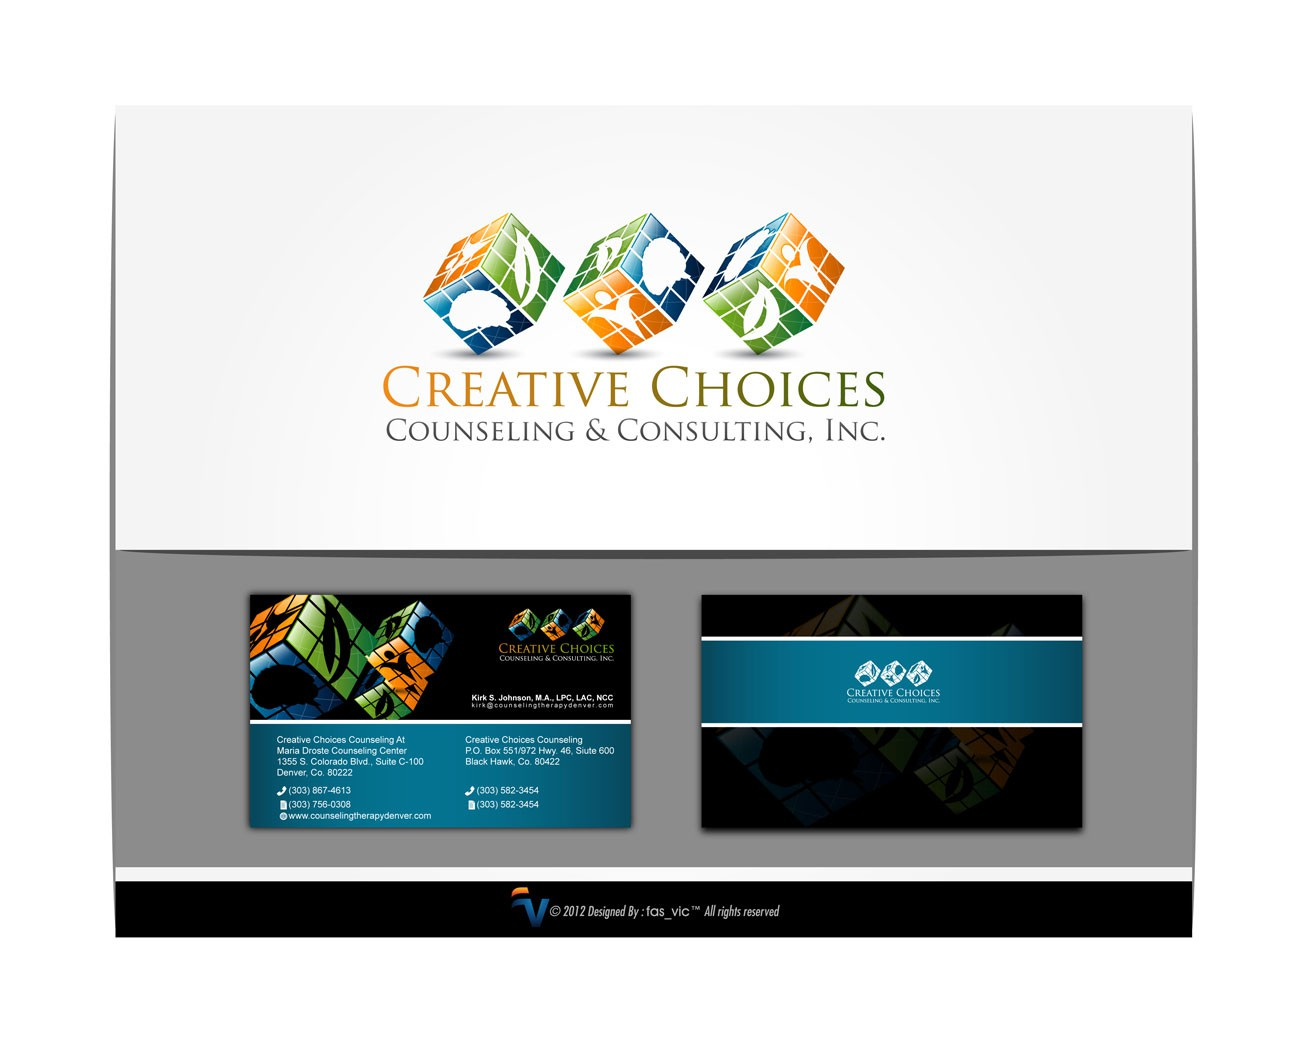 Create the next logo and business card for Creative Choices Counseling & Consulting, Inc.